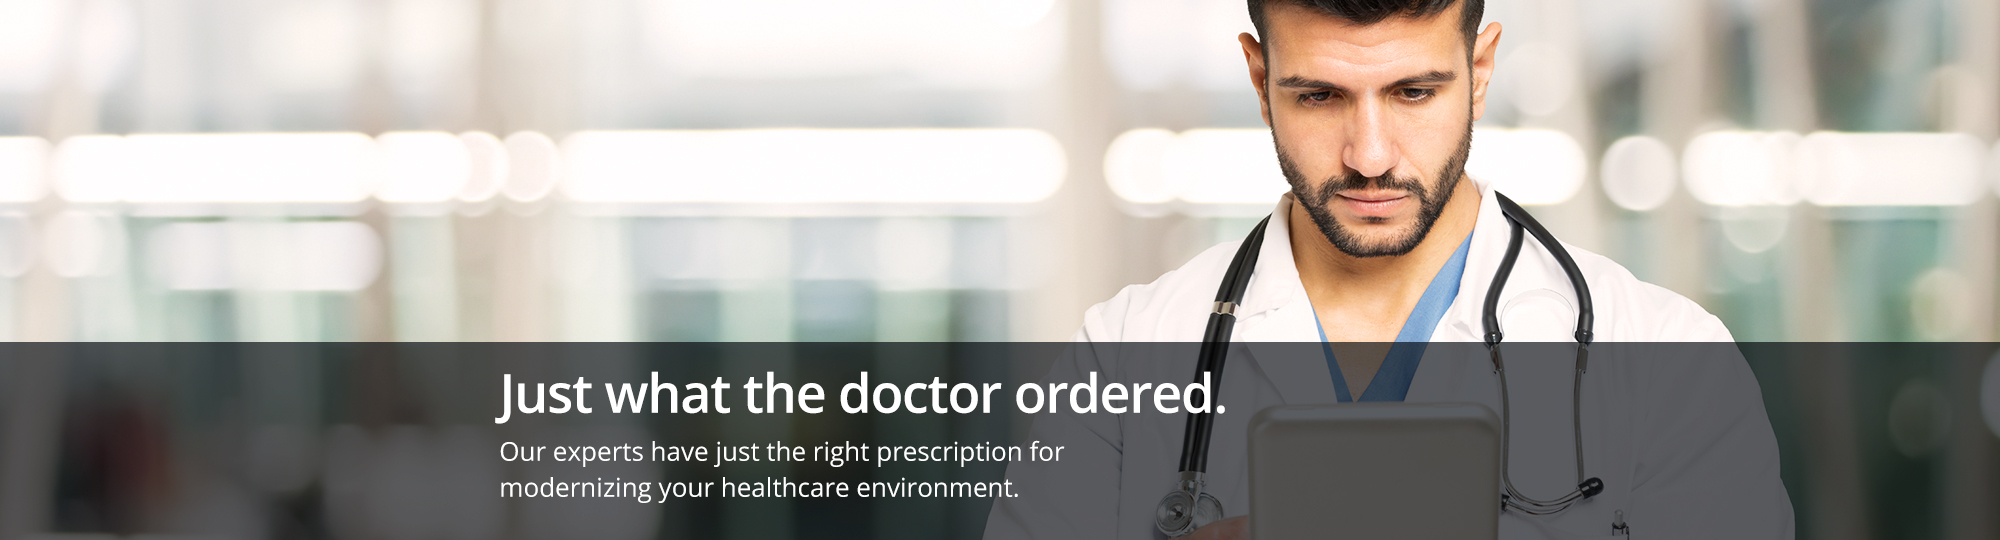 Just what the doctor ordered. Our experts have just the right prescription for modernizing your healthcare environment.